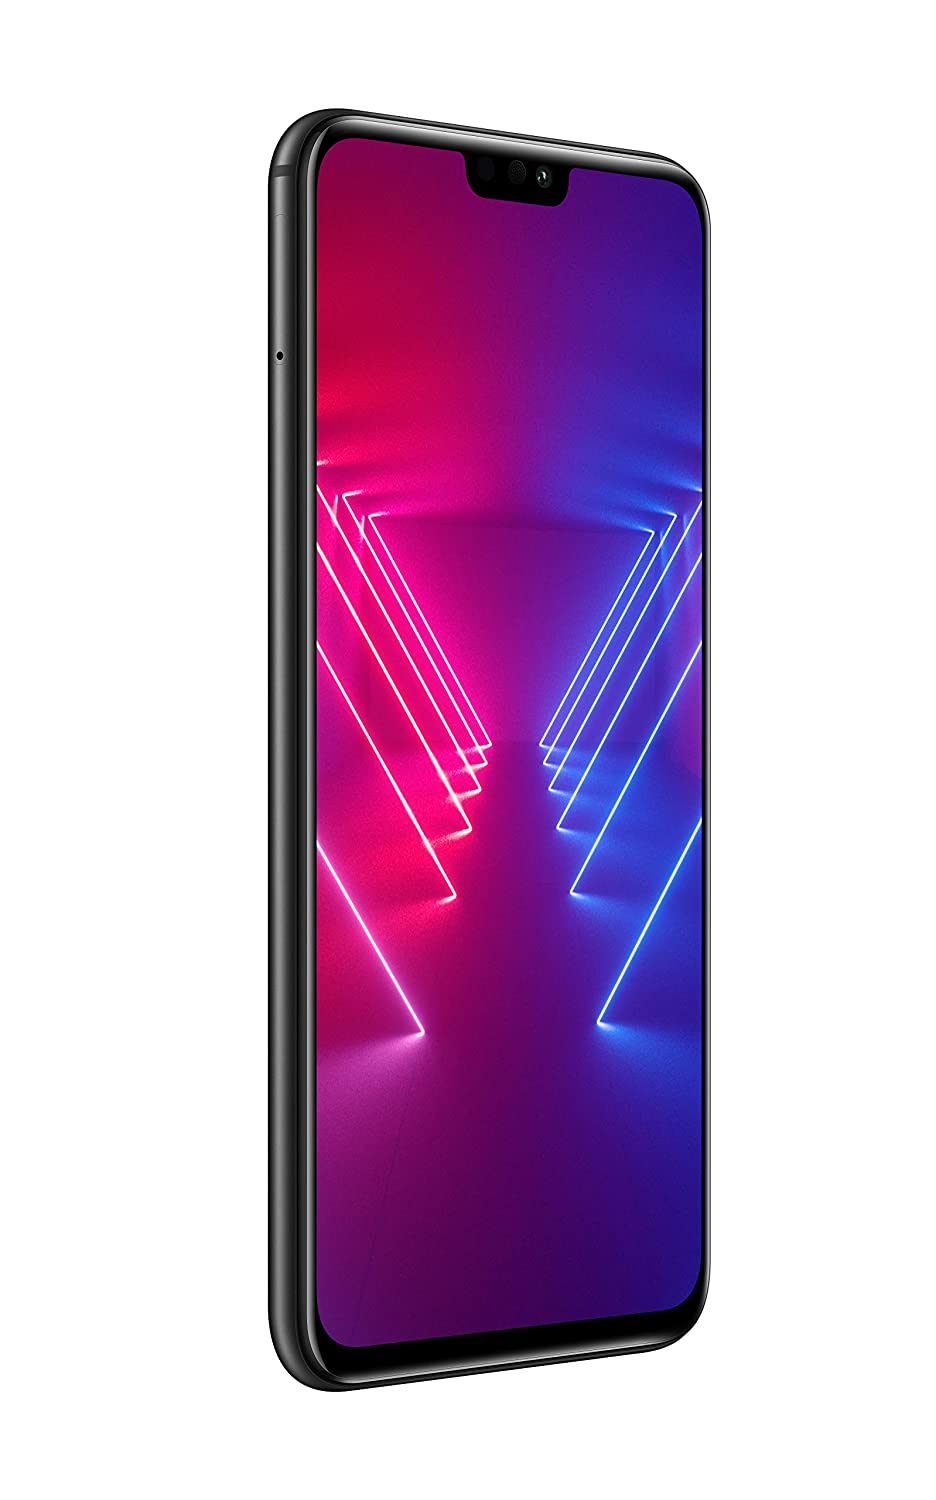 "Honor View 10 Lite Smartphone, Nero, 128GB Memoria, 4GB RAM, Display 6.5"" FHD+, Doppia AI Camera 20+2MP [Italia]"